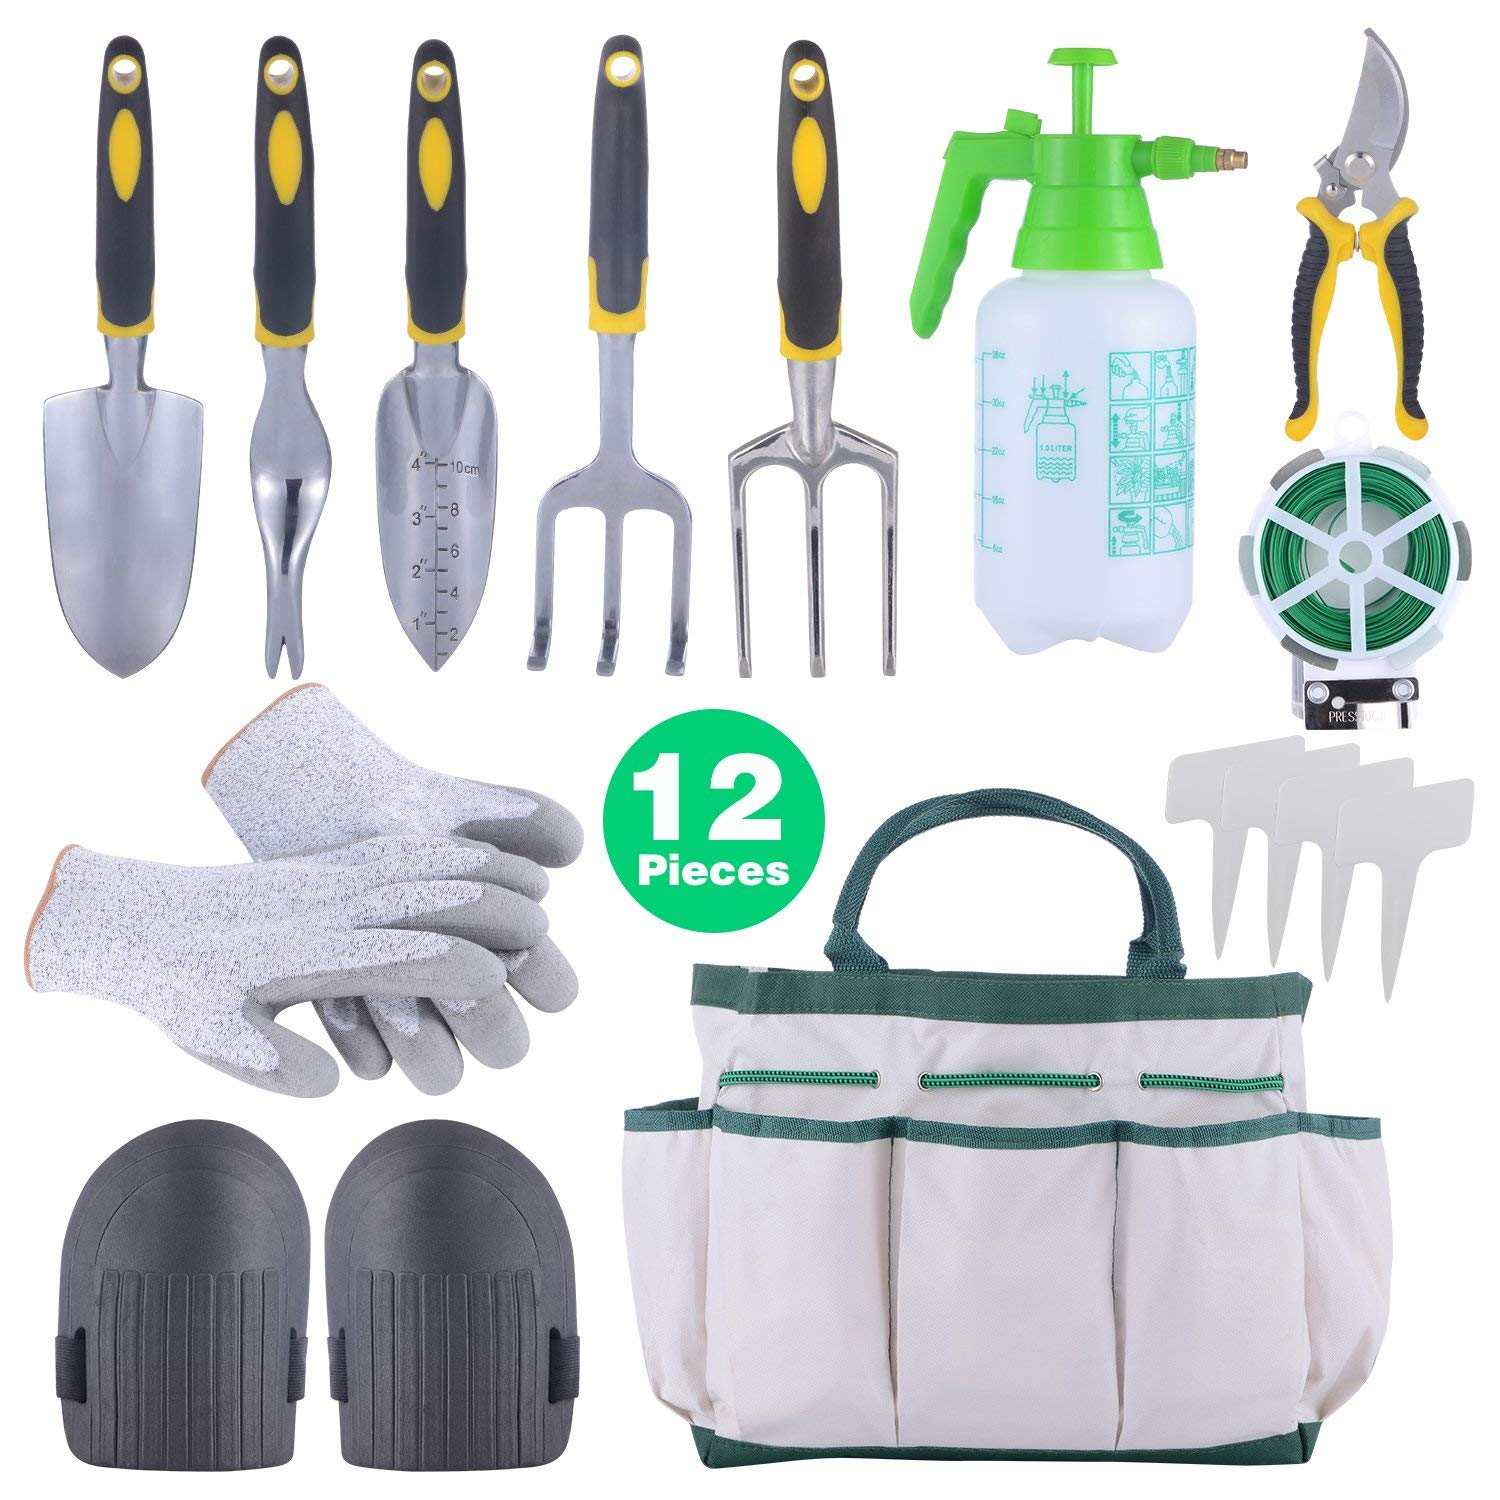 Sonyabecca 12pcs Garden Tools Set Gardening Gift Kit Ergonomic Gardening Tools with Garden Tote 6 Hand Tools Anti-Cutting Gloves Sprayer Knee Pads Plant Labels Plant Rope by Sonyabecca